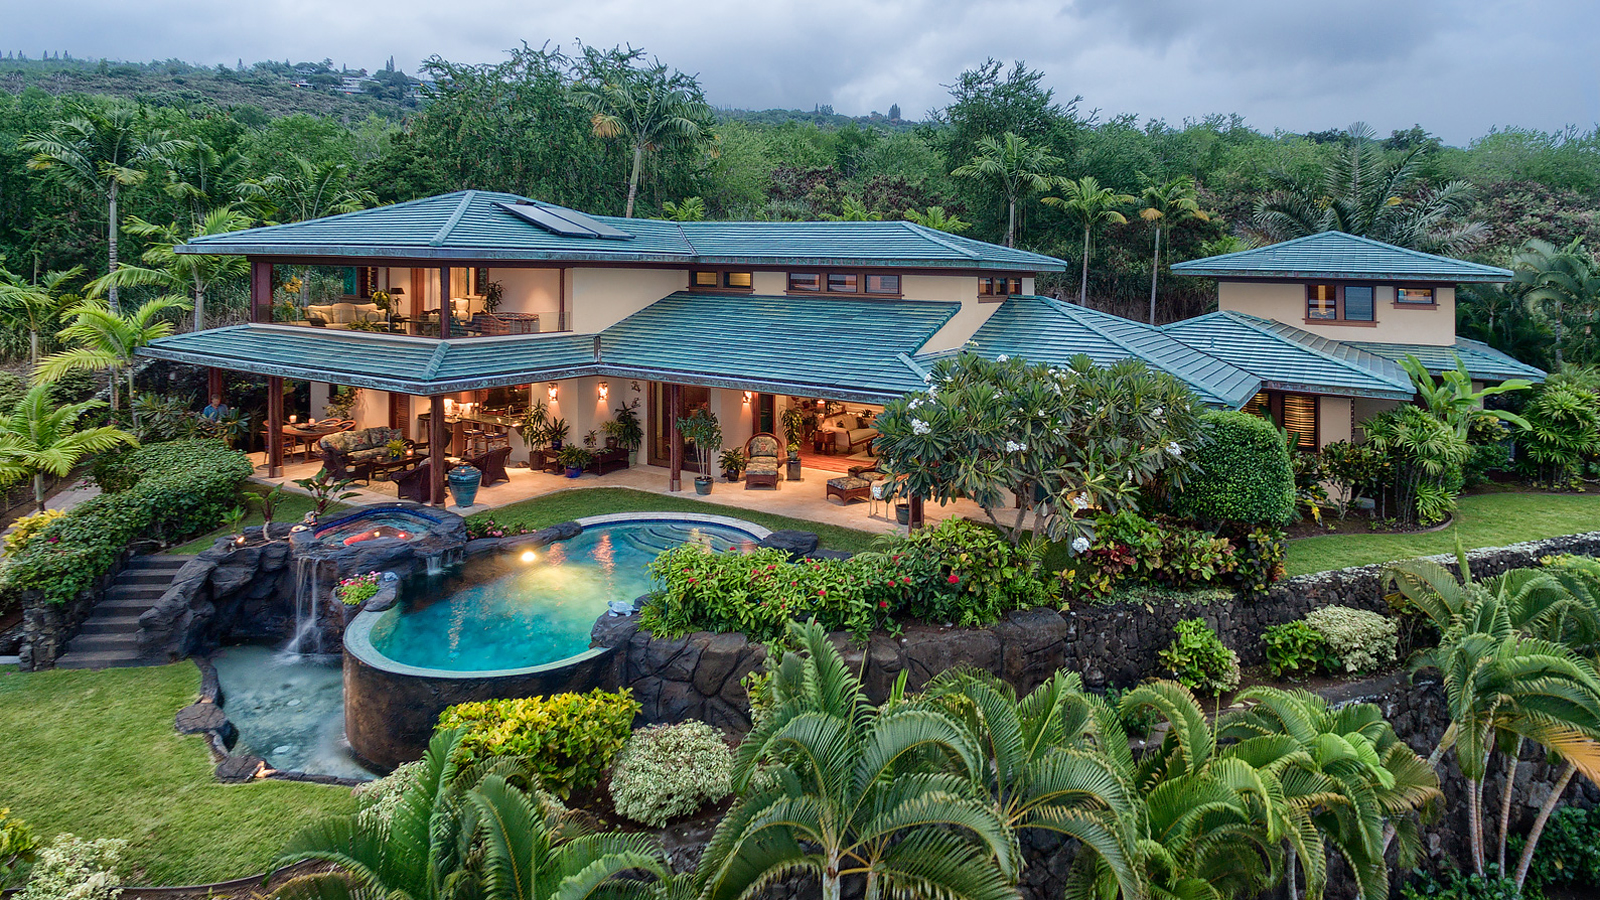 Hawaii homes with tropical landscape design hawaii real for Island home designs hawaii